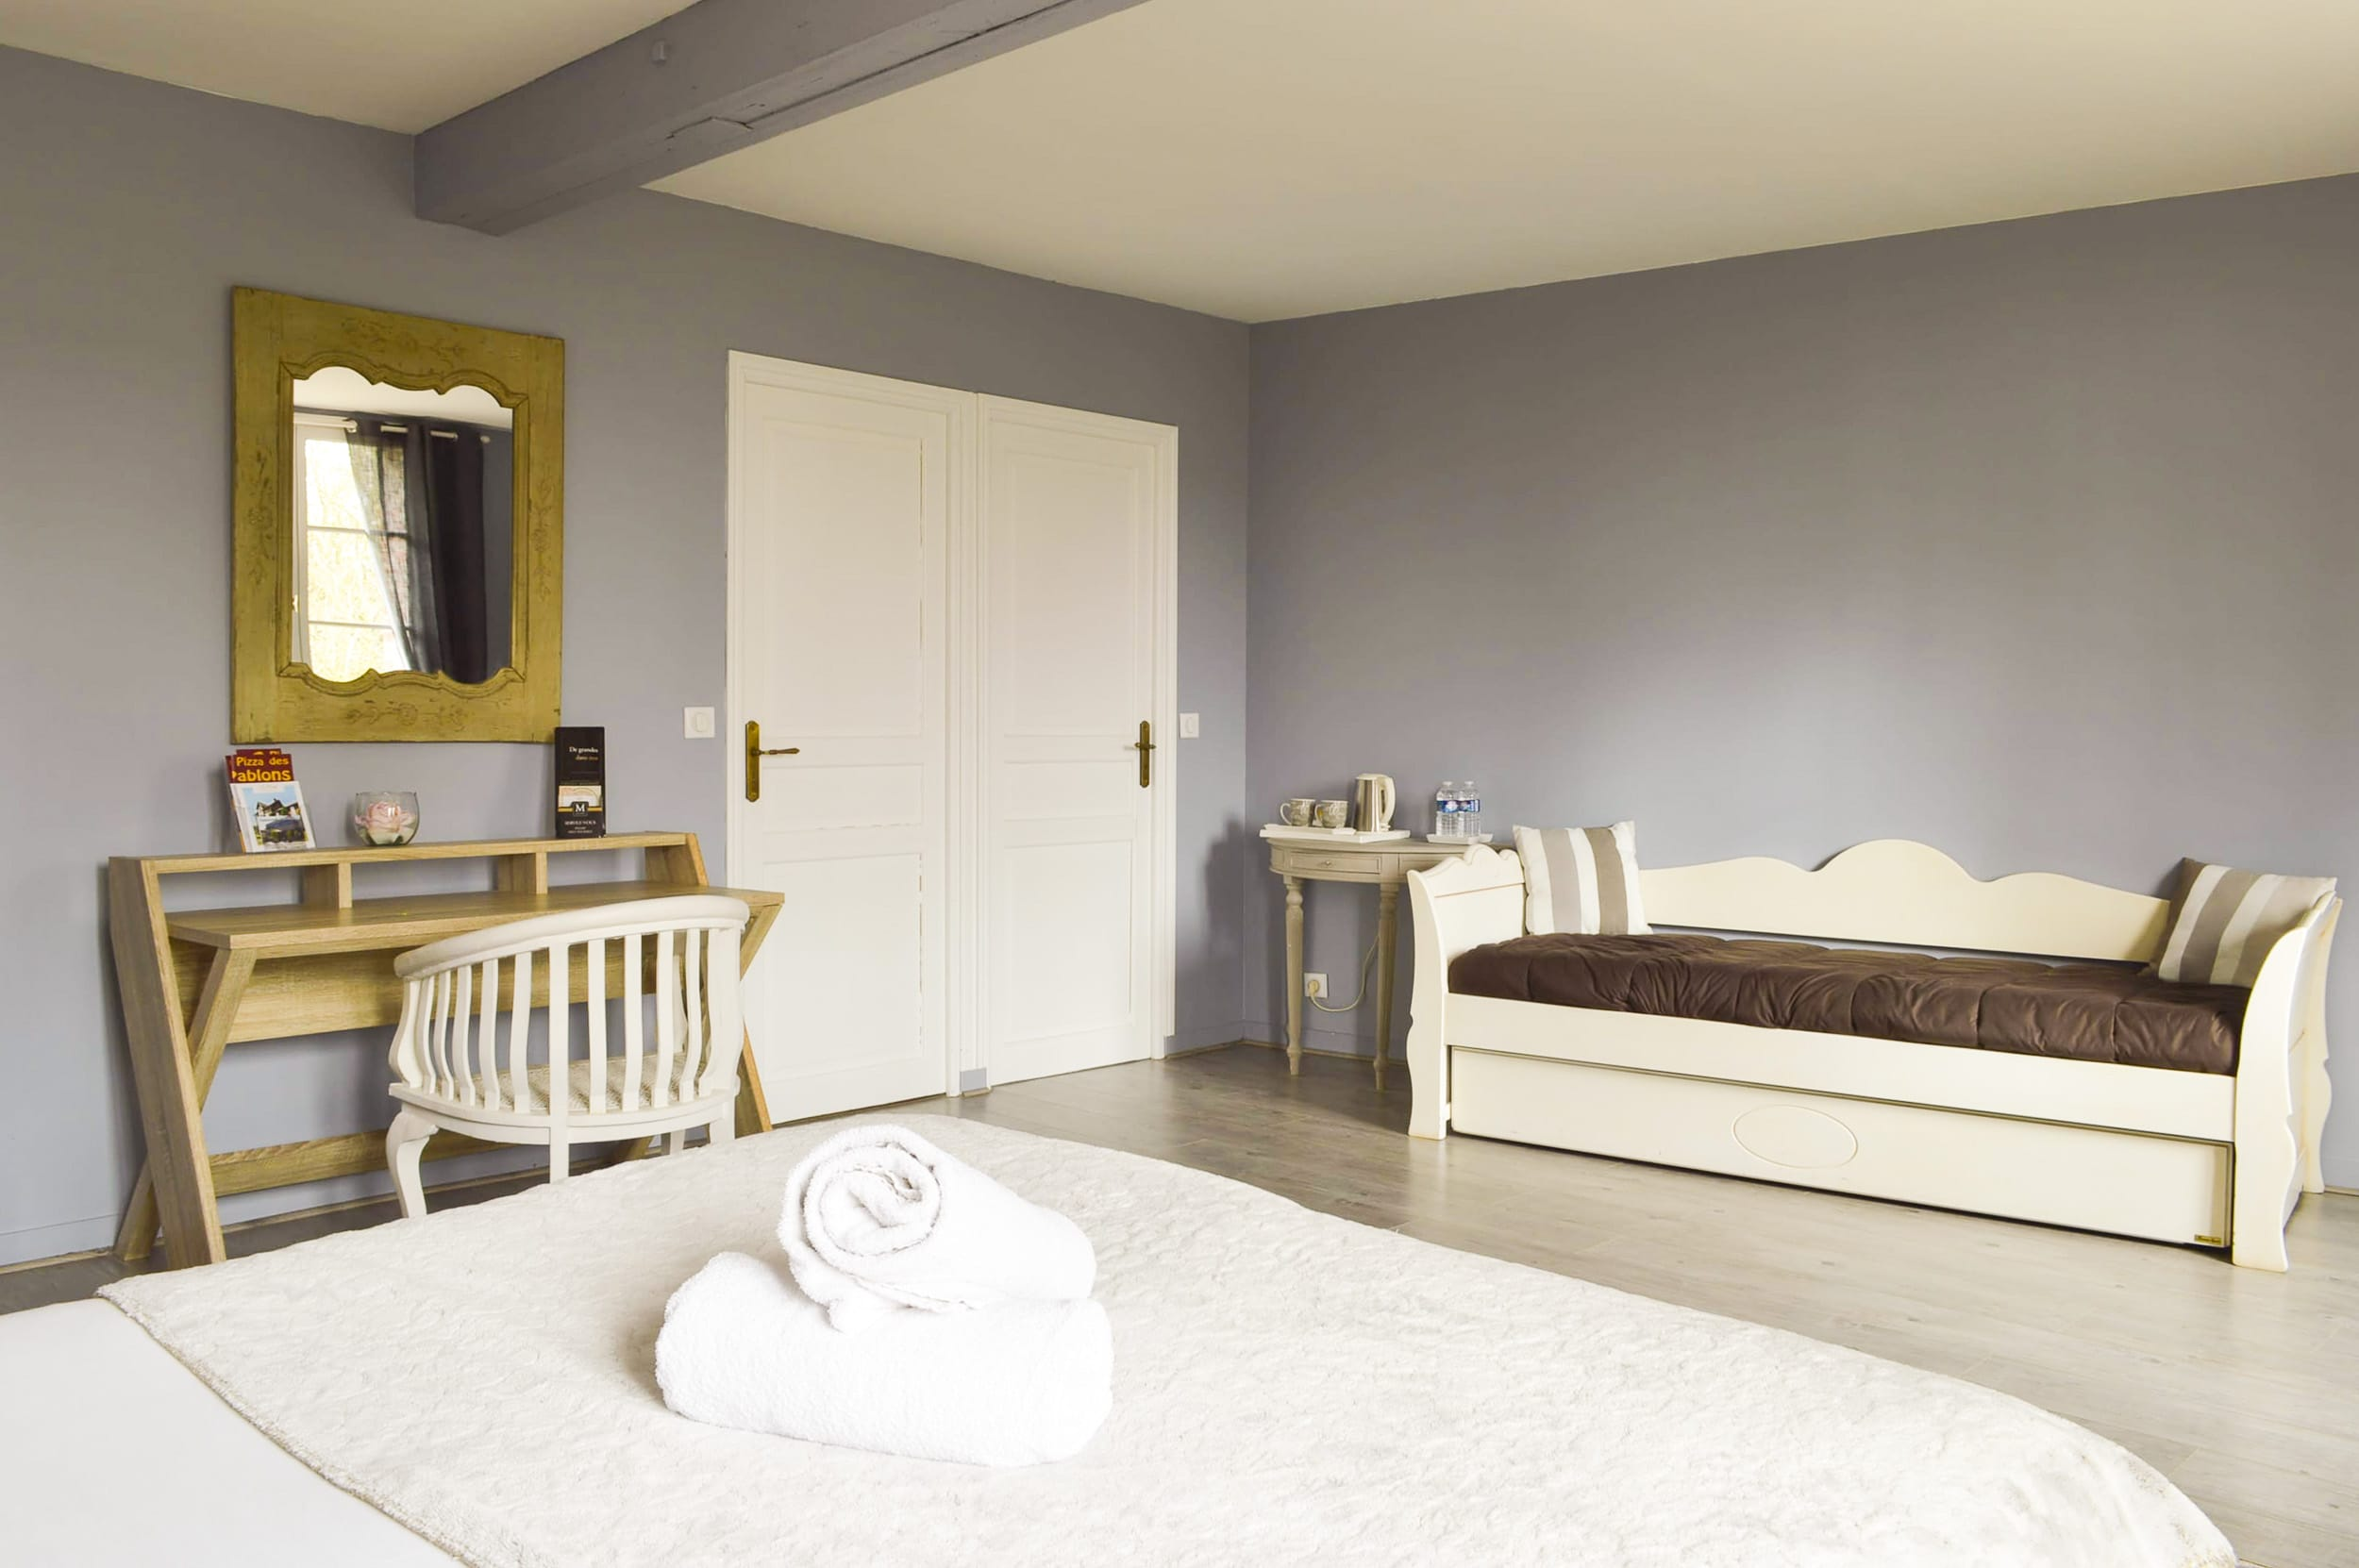 chambre coloniale weekend amoureux 4 les granges haillancourt. Black Bedroom Furniture Sets. Home Design Ideas